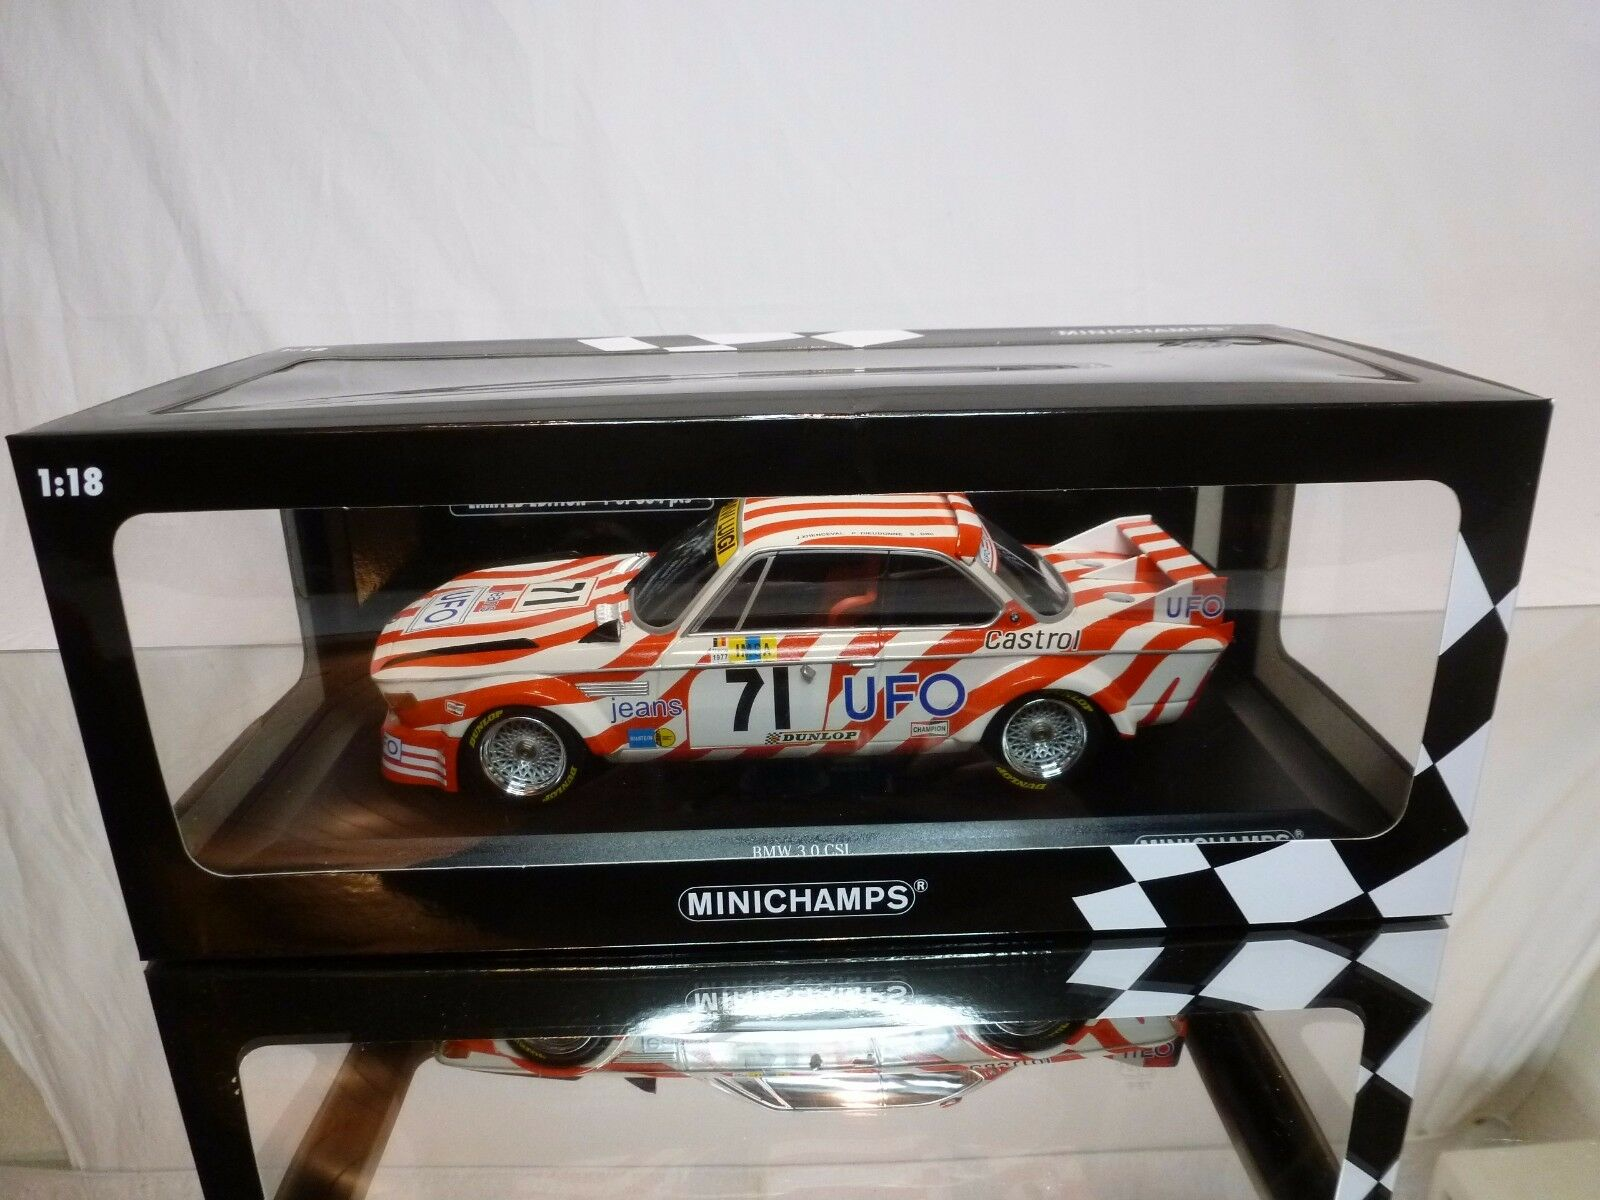 MINICHAMPS 772571 BMW 3.0 CSL - UFO LE MANS 1977 - bianca 1 18 - EXCELLENT IN BOX